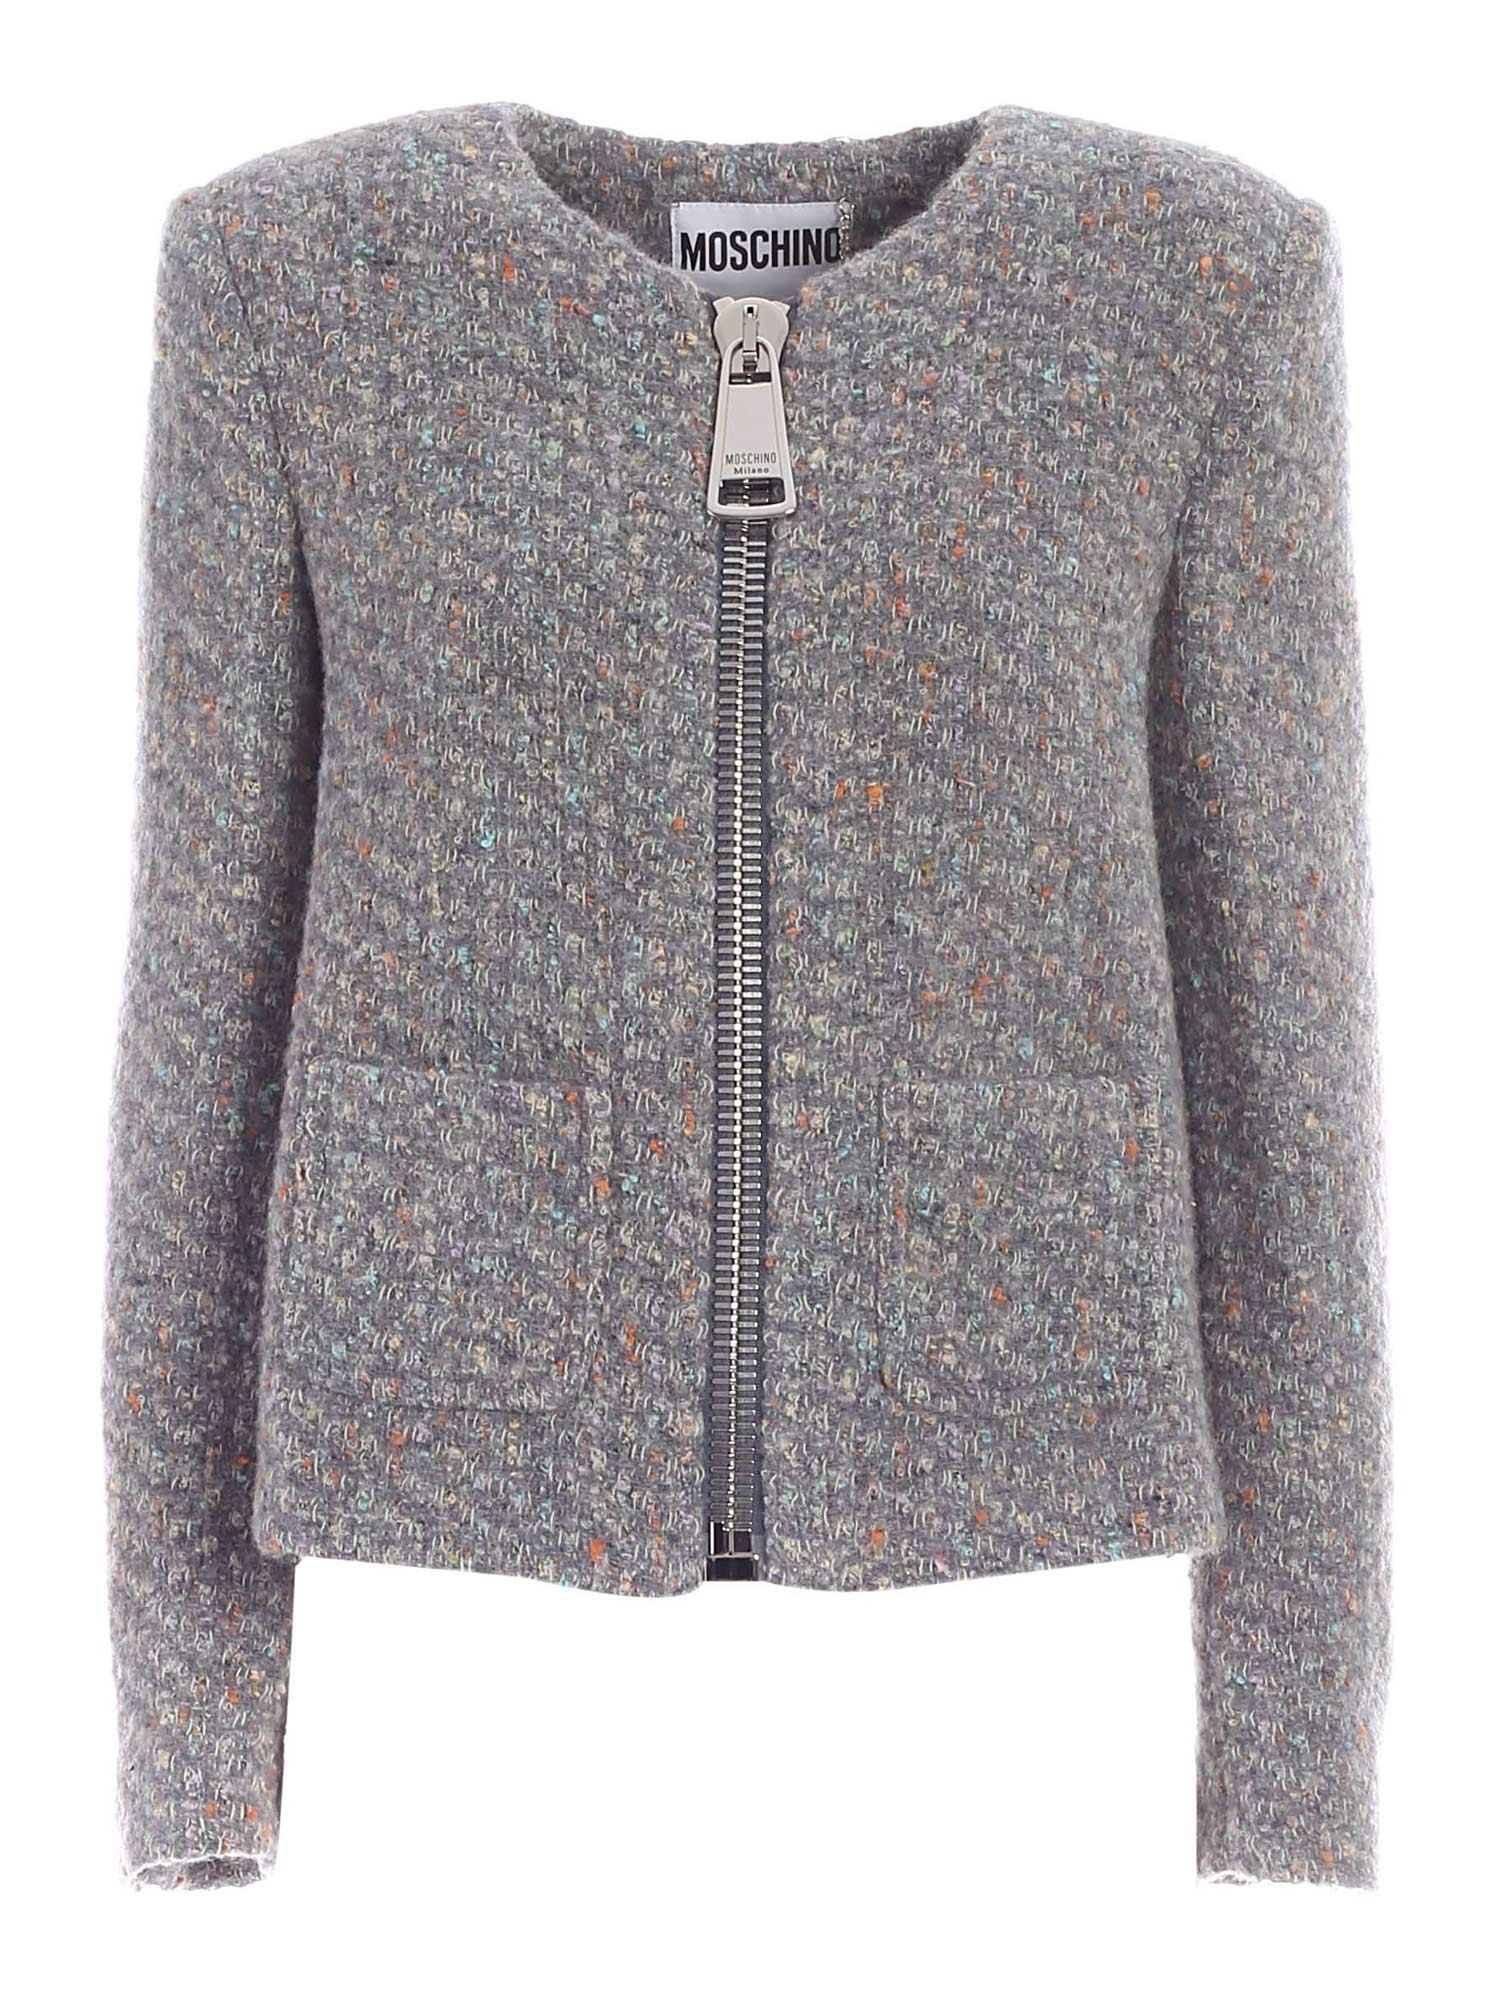 Moschino MOSCHINO WOMEN'S GREY WOOL JACKET